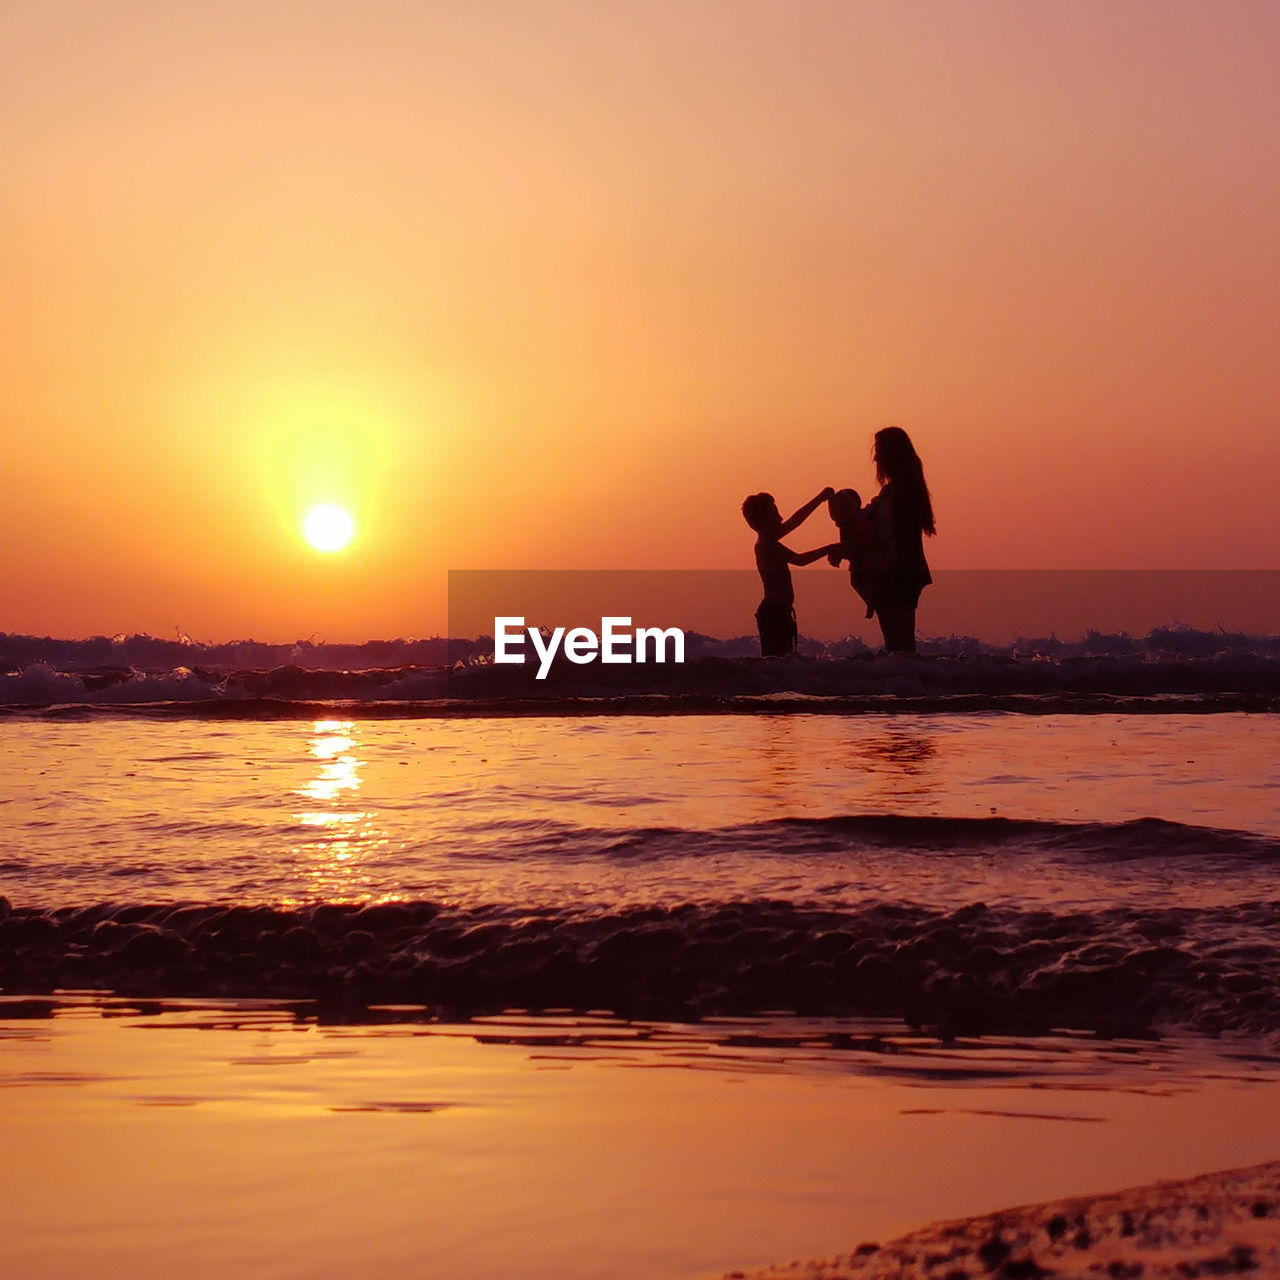 sunset, two people, water, sky, silhouette, real people, orange color, togetherness, beauty in nature, sea, men, scenics - nature, standing, beach, sun, land, bonding, love, leisure activity, positive emotion, couple - relationship, outdoors